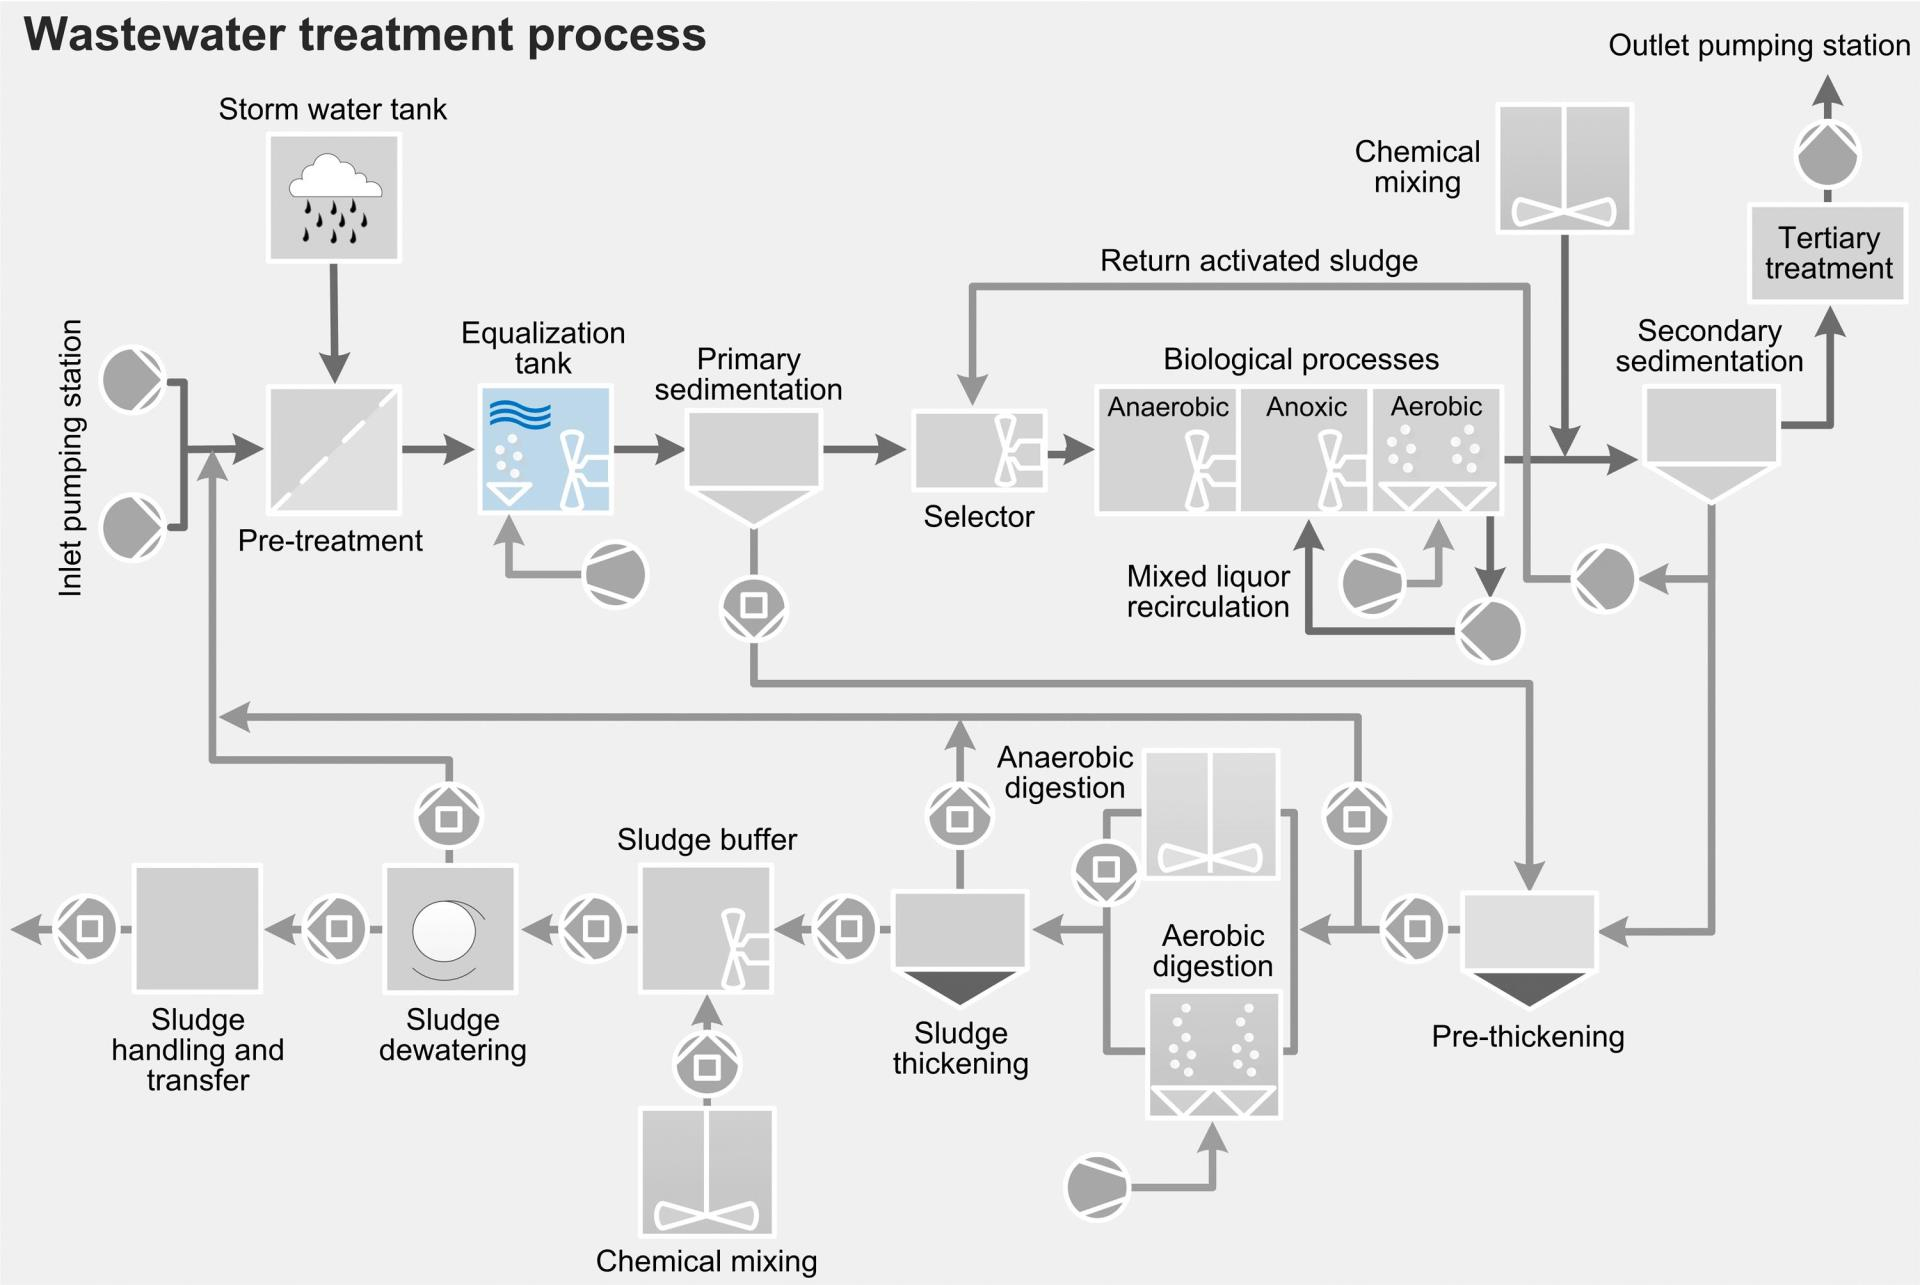 Wastewater treatment process - equalization